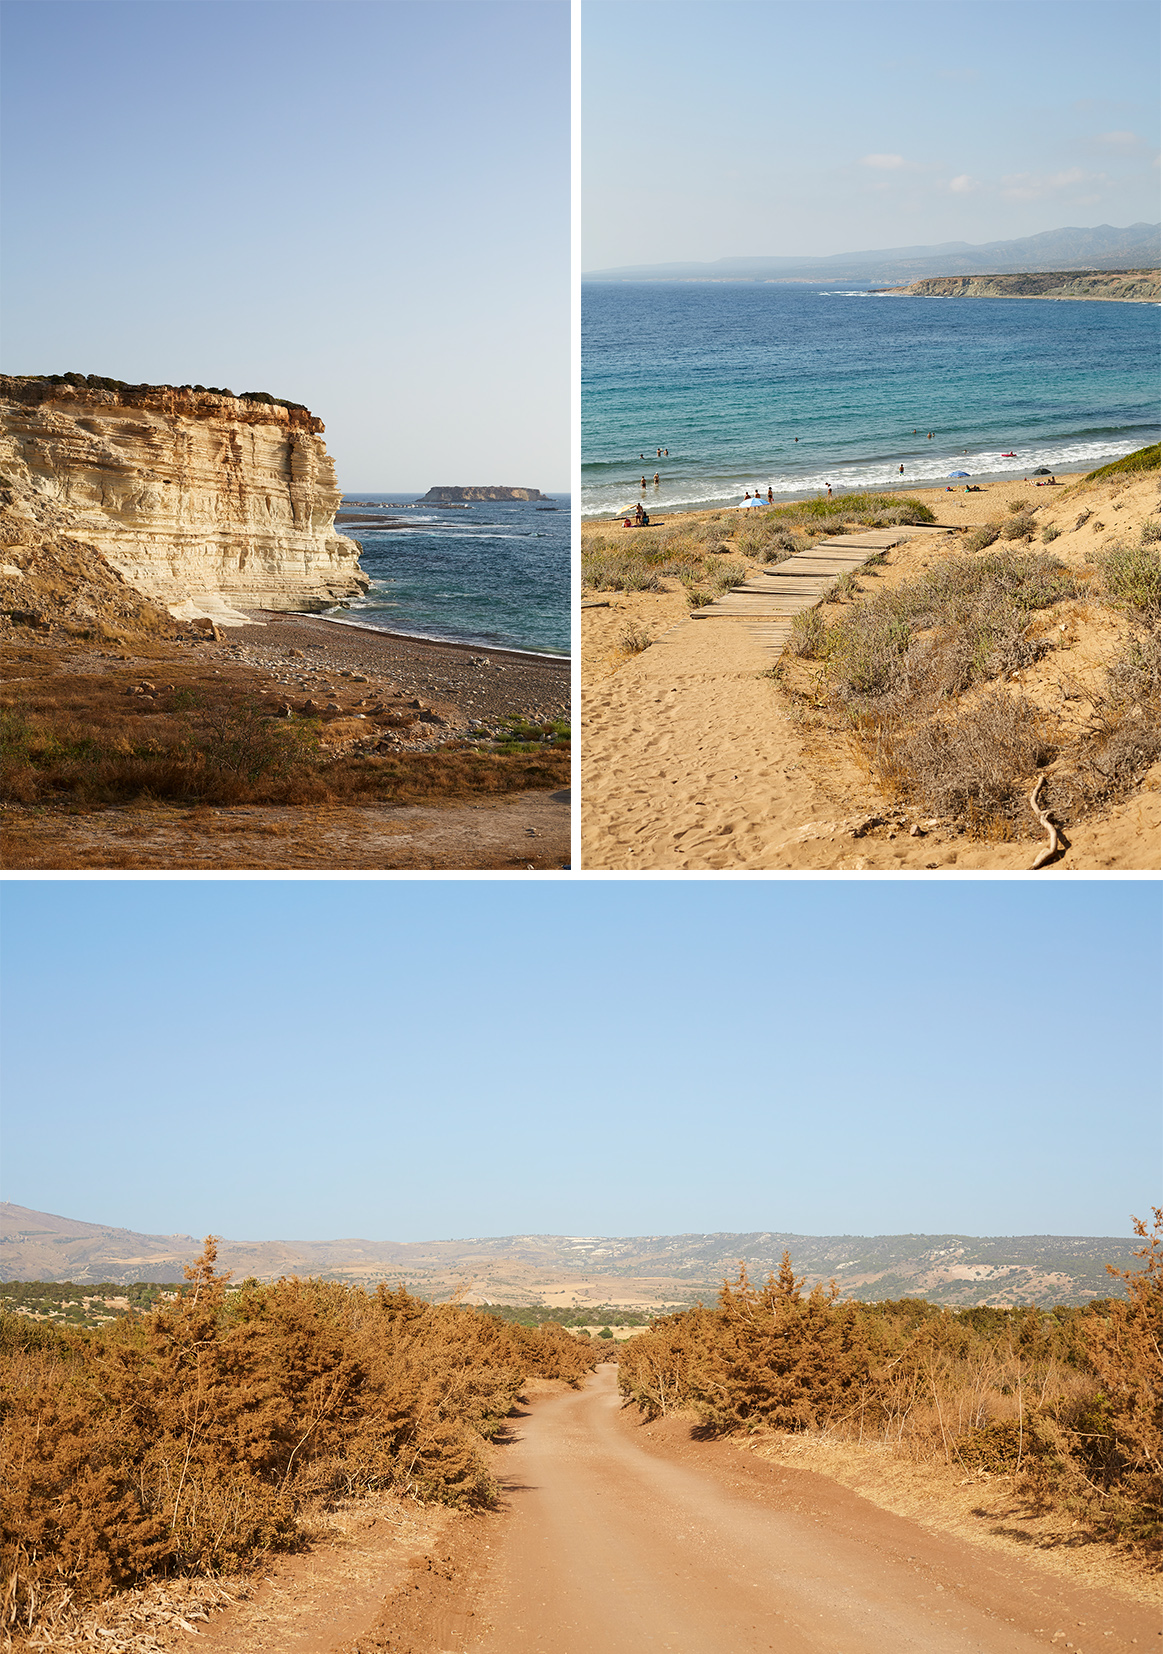 Discover hidden gems like Lara Beach by going off road